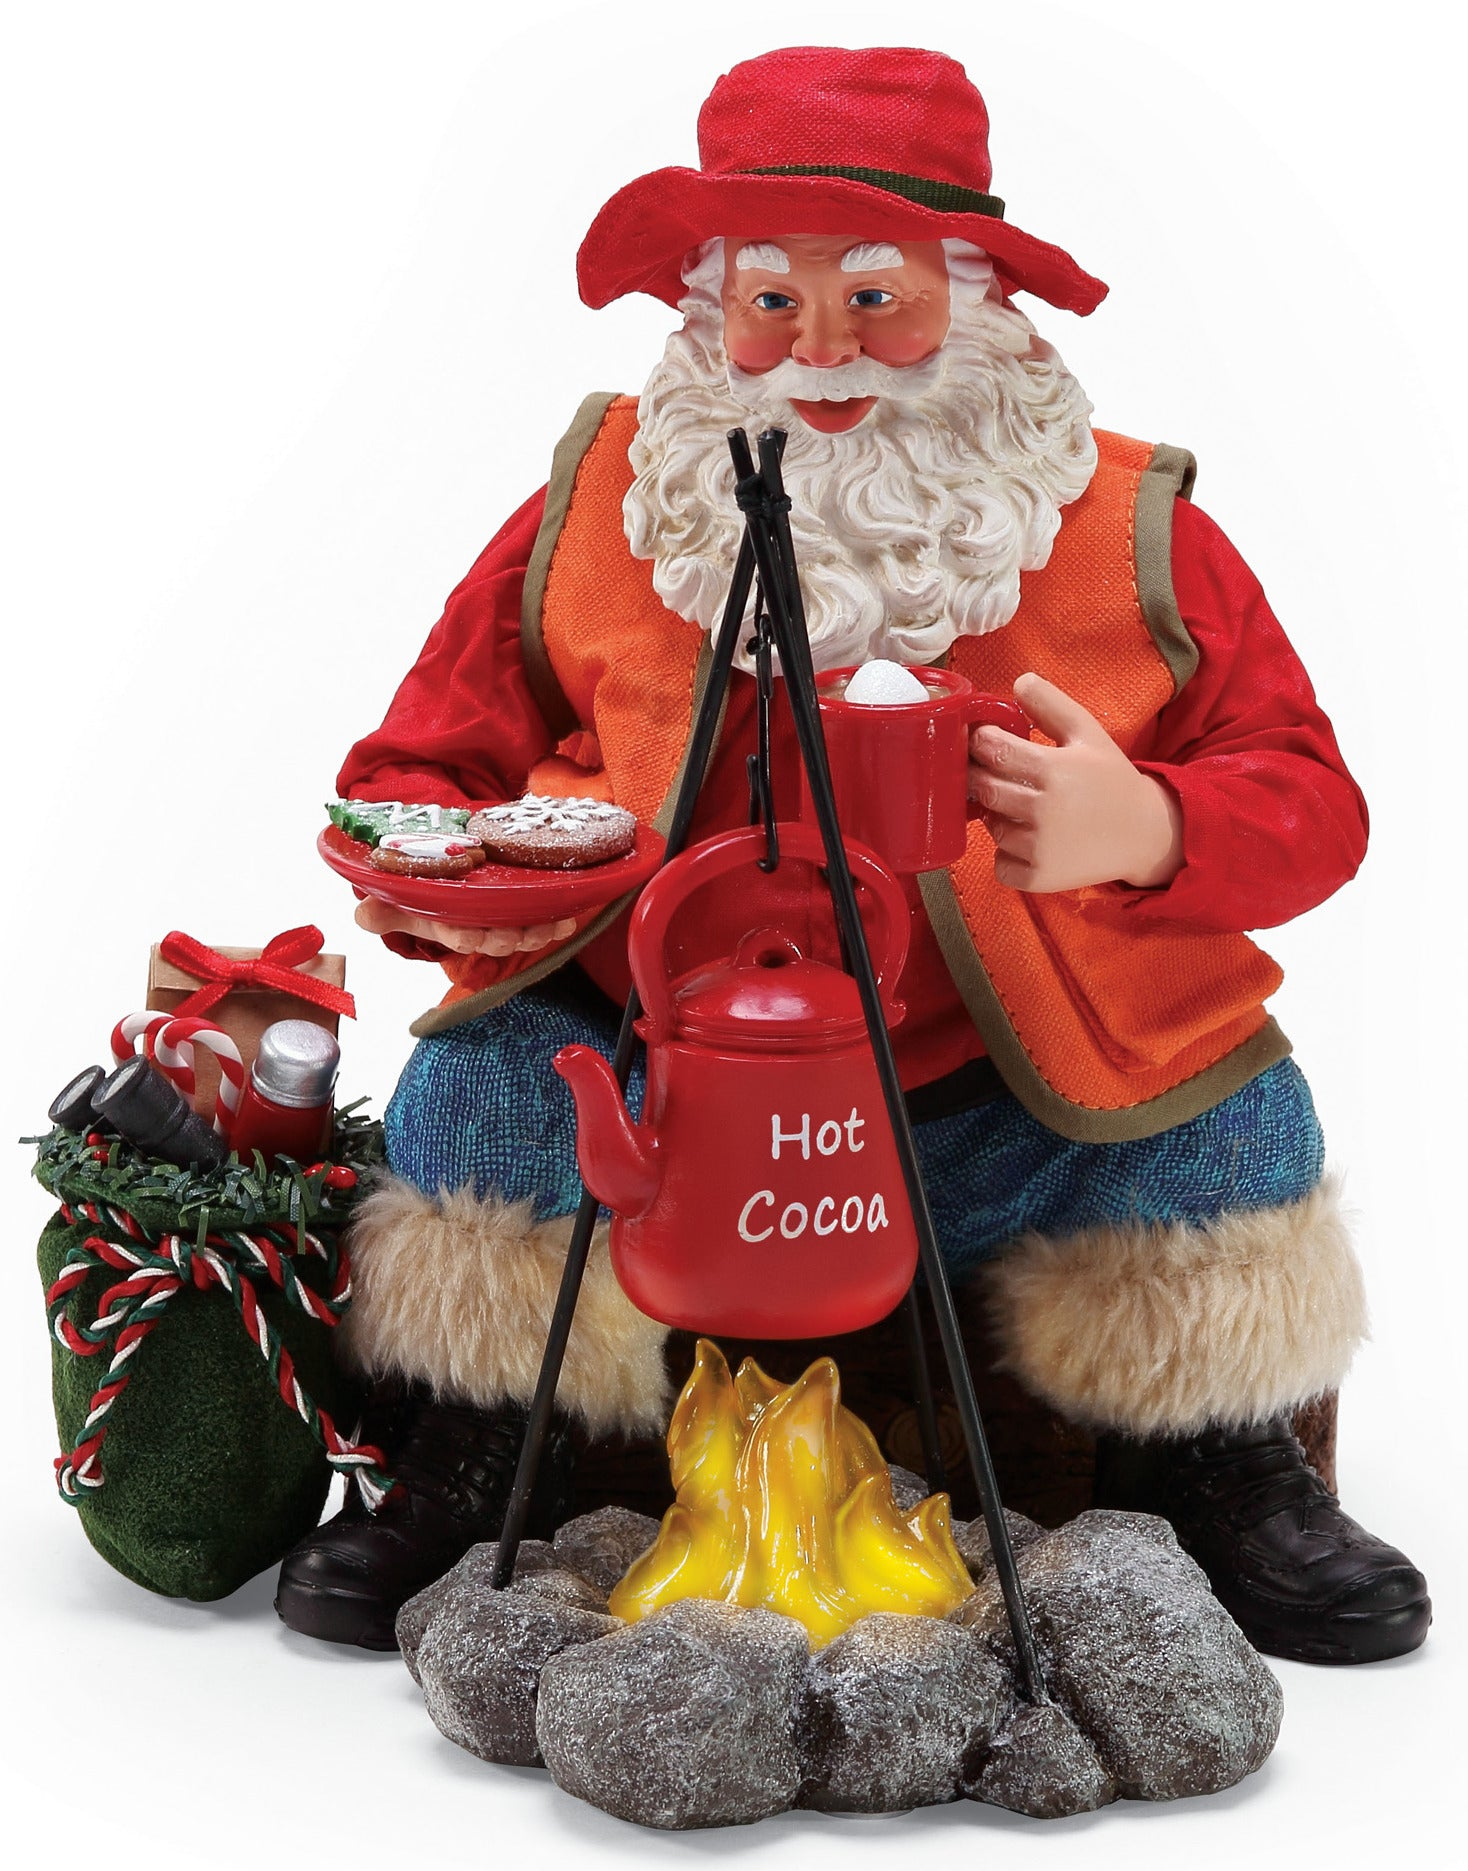 Camping Santa with Campfire, Hot Cocoa and Cookies